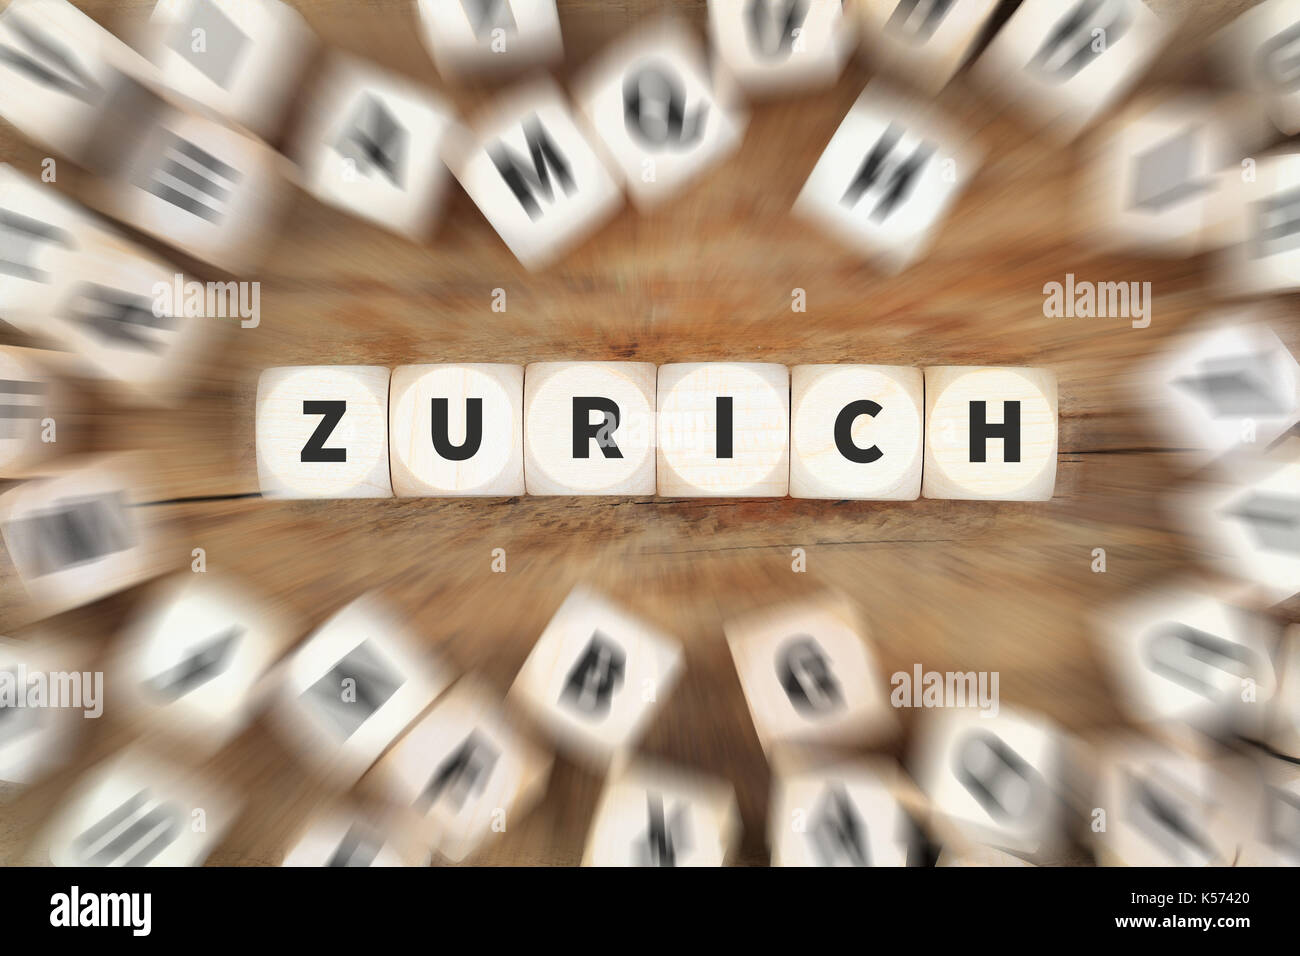 Zurich town city travel traveling dice business concept idea - Stock Image